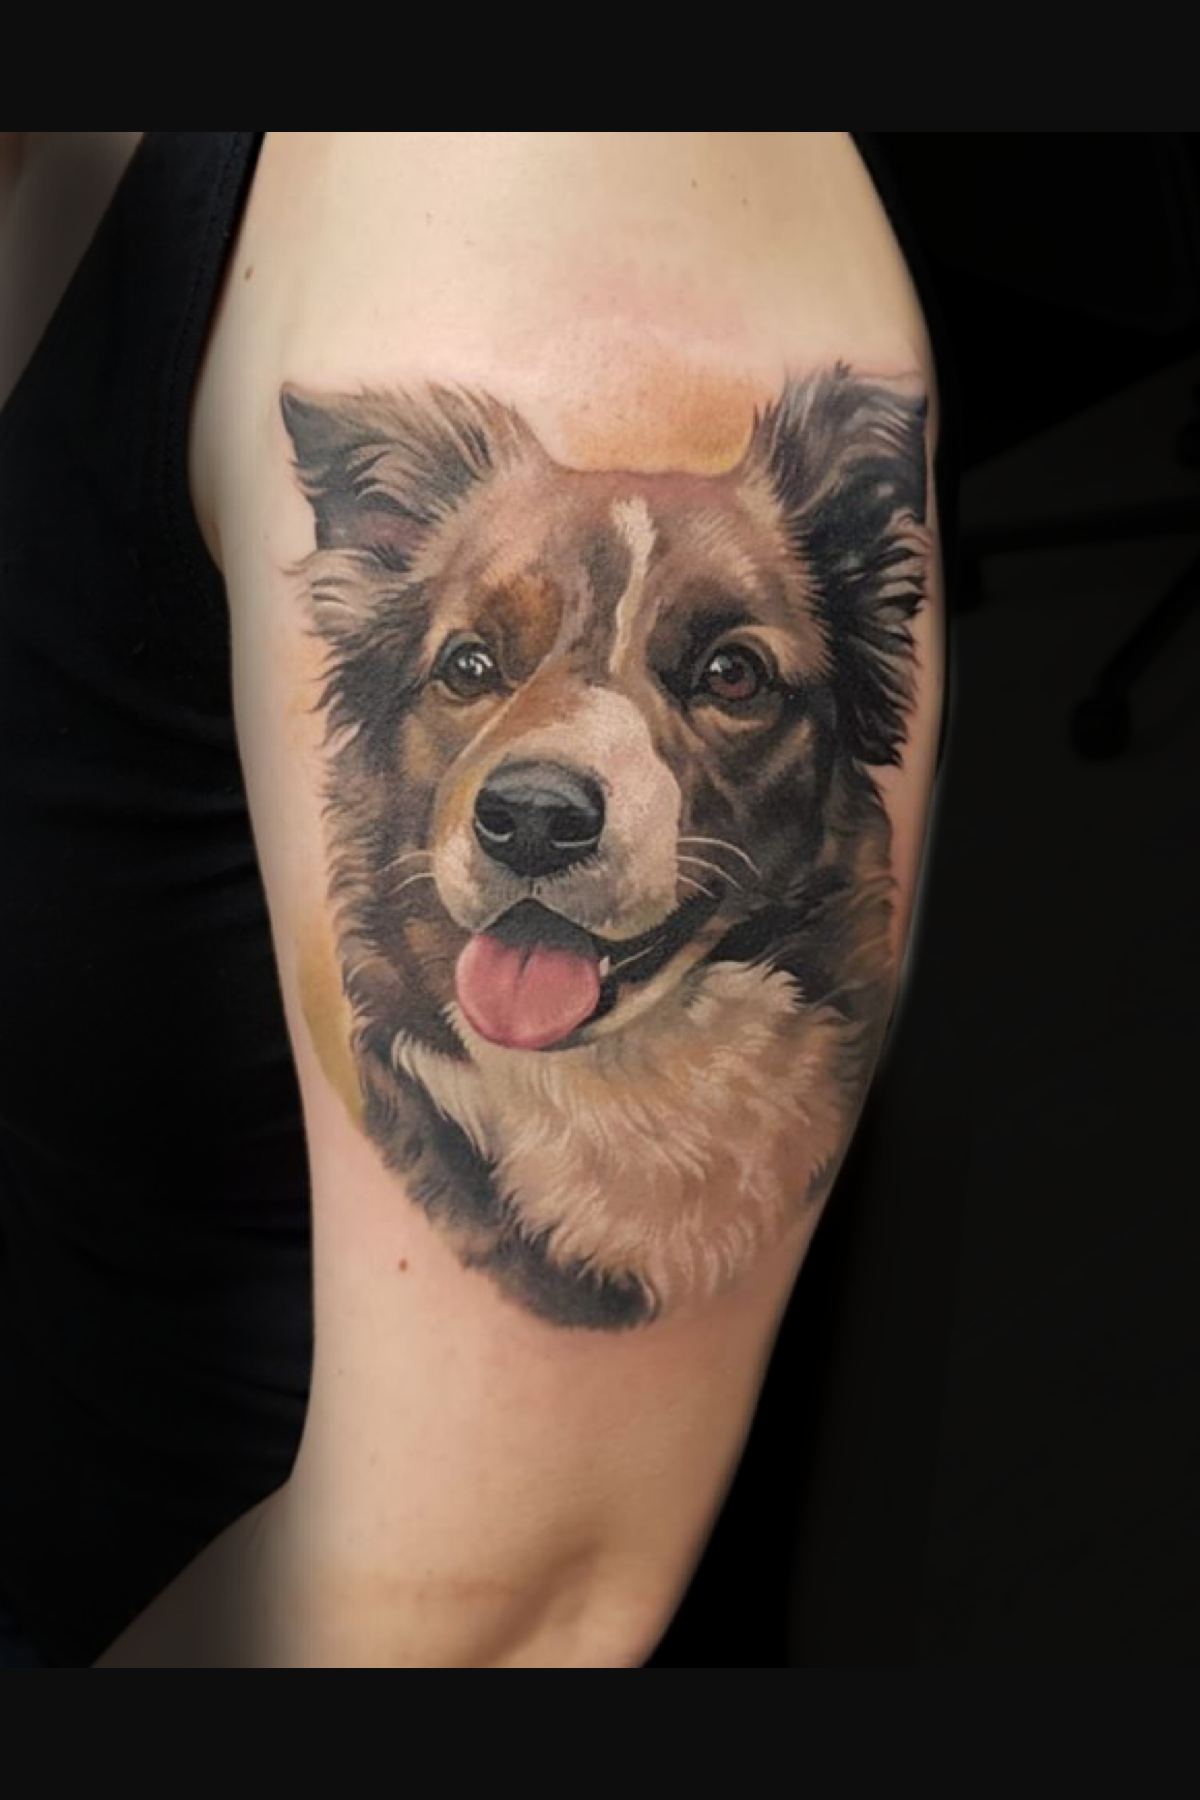 Pin By Melissa Kuhn On Doggo Tribute In 2020 Dog Tattoos Tattoo